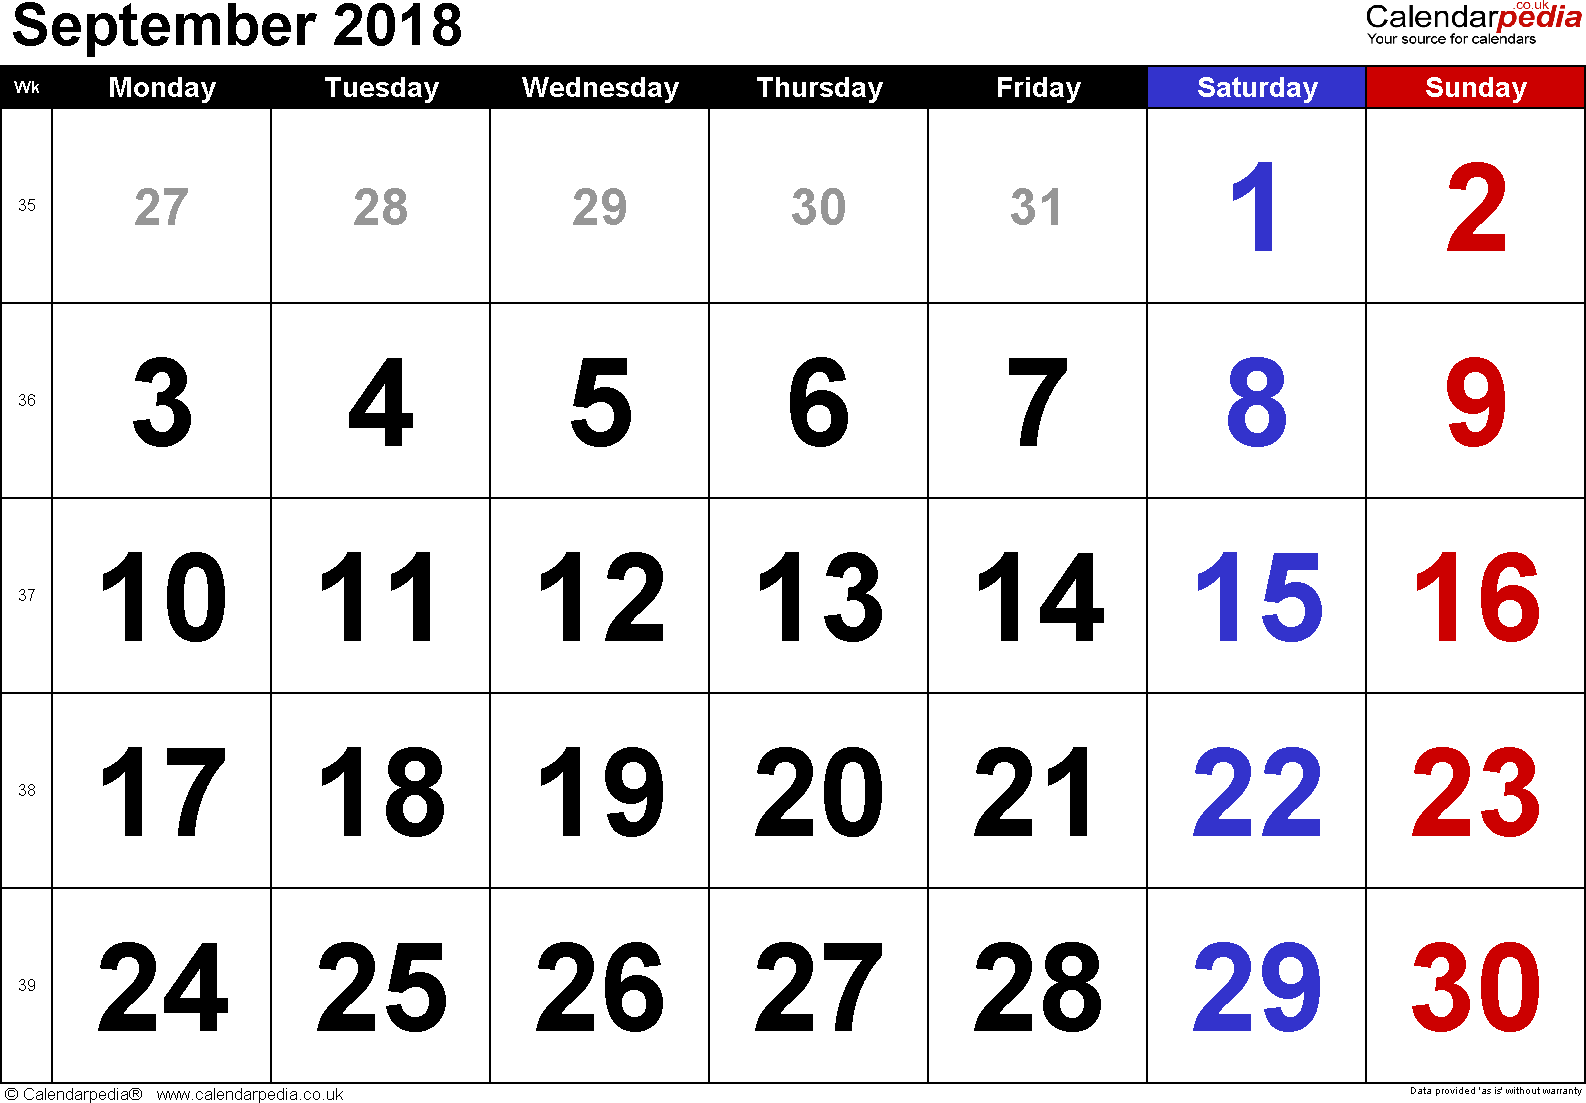 Calendar September 2018, landscape orientation, large numerals, 1 page, with UK bank holidays and week numbers